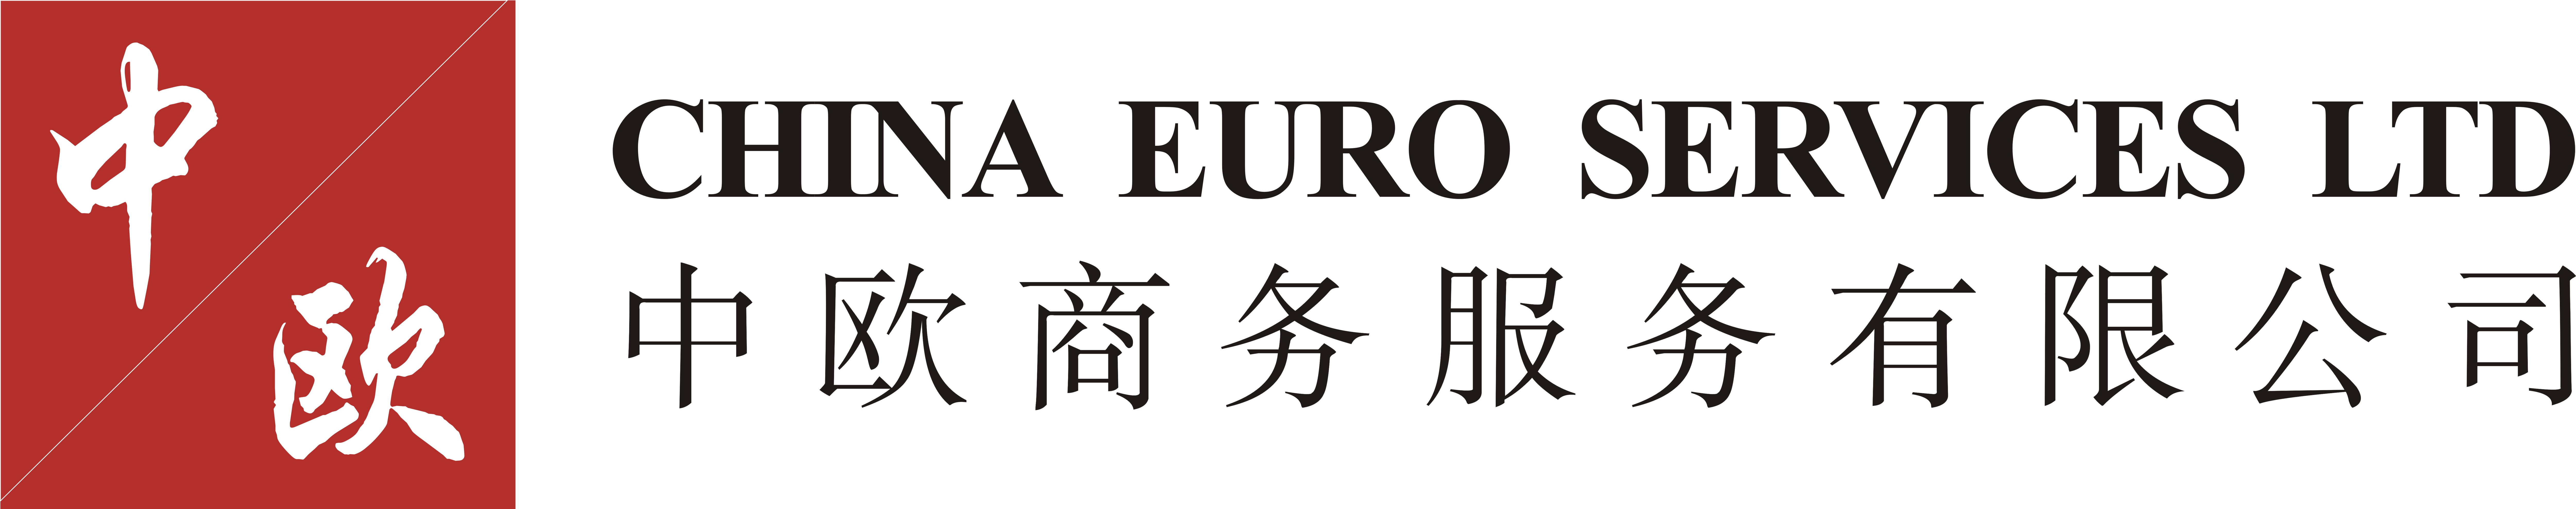 china euro services ltd.